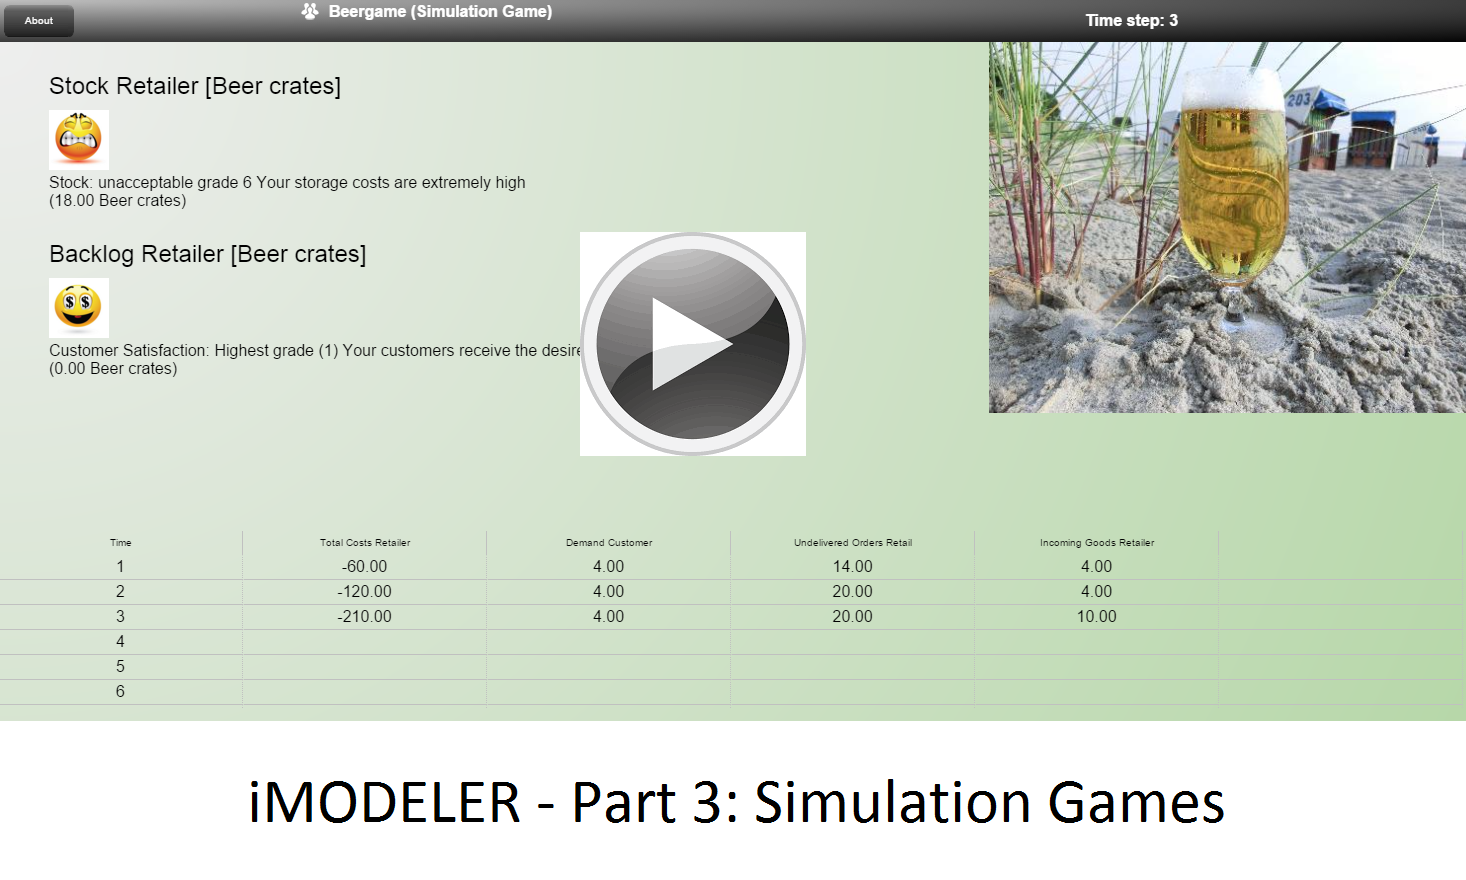 iMODELER - Part 3: Simulation Games